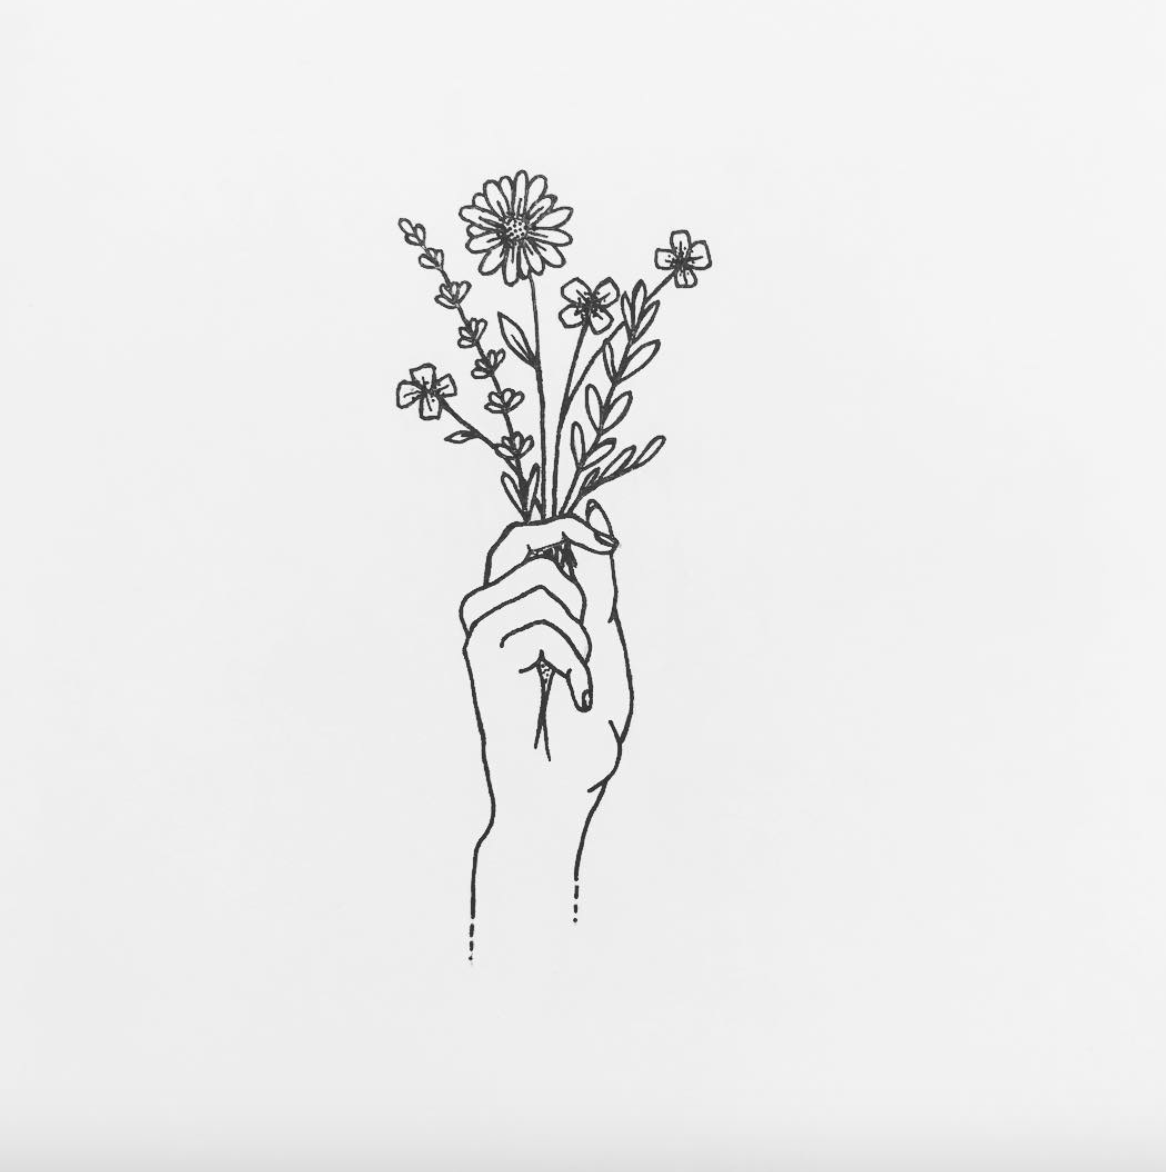 I Made This Hand Myself And Will Soon Be Available On My Youtube Channel Uncategorized Flower Drawing Hands Holding Flowers Drawings